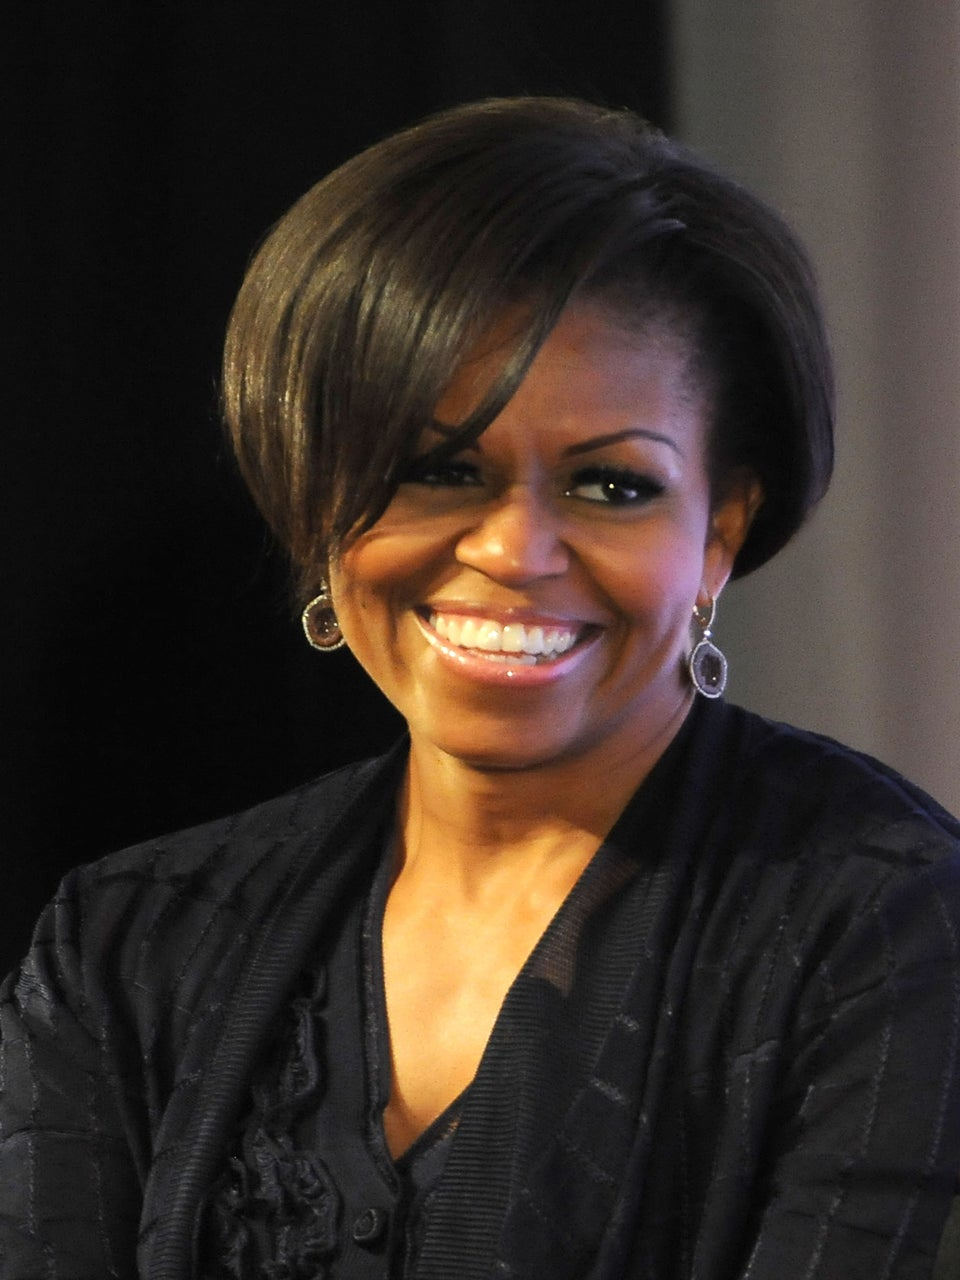 The First Lady Heads to South Africa This Week